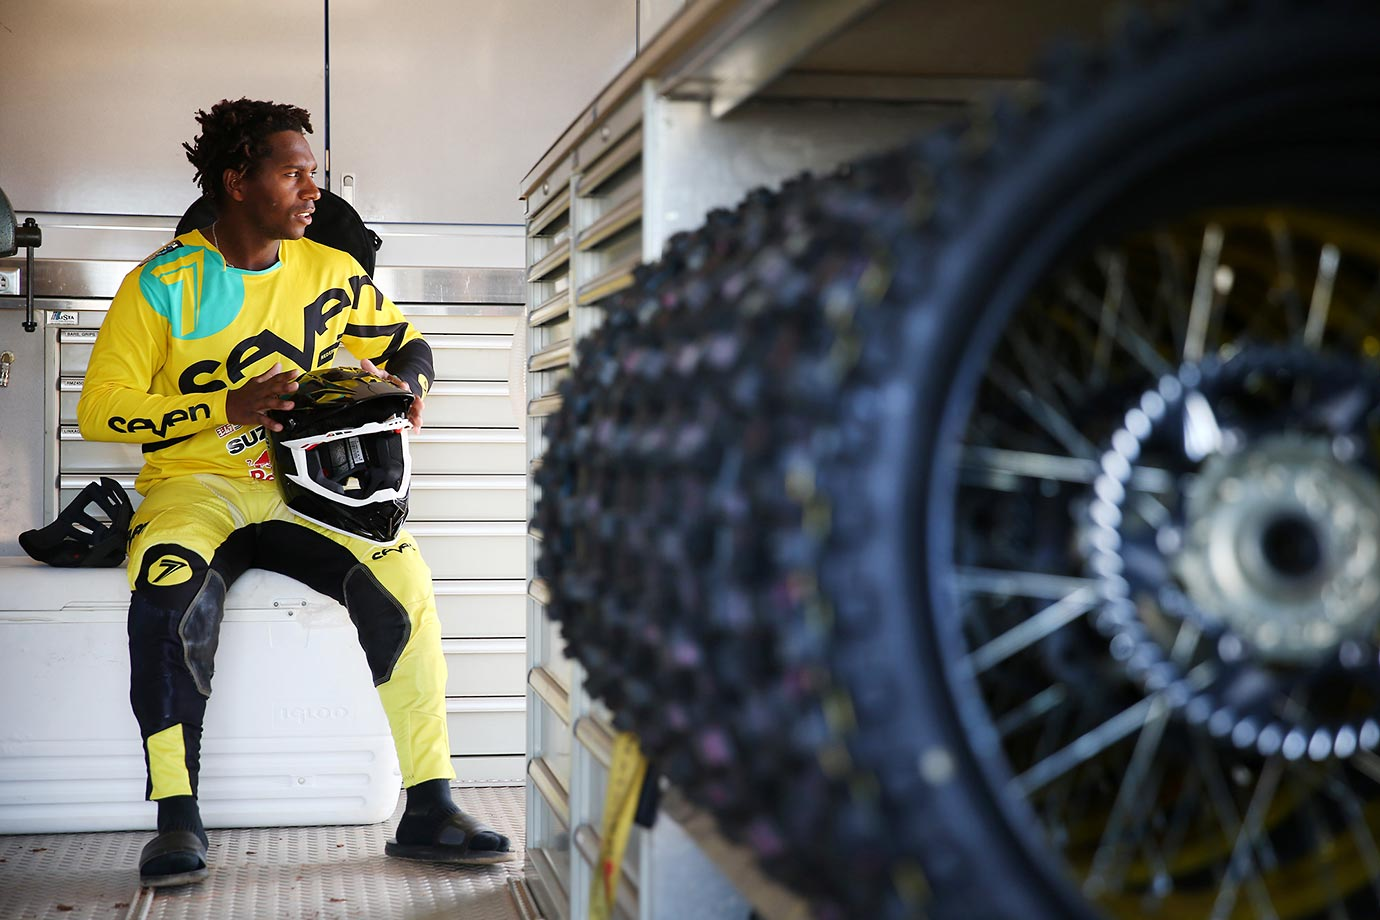 Supercross rider James Stewart suits up in his trailer.